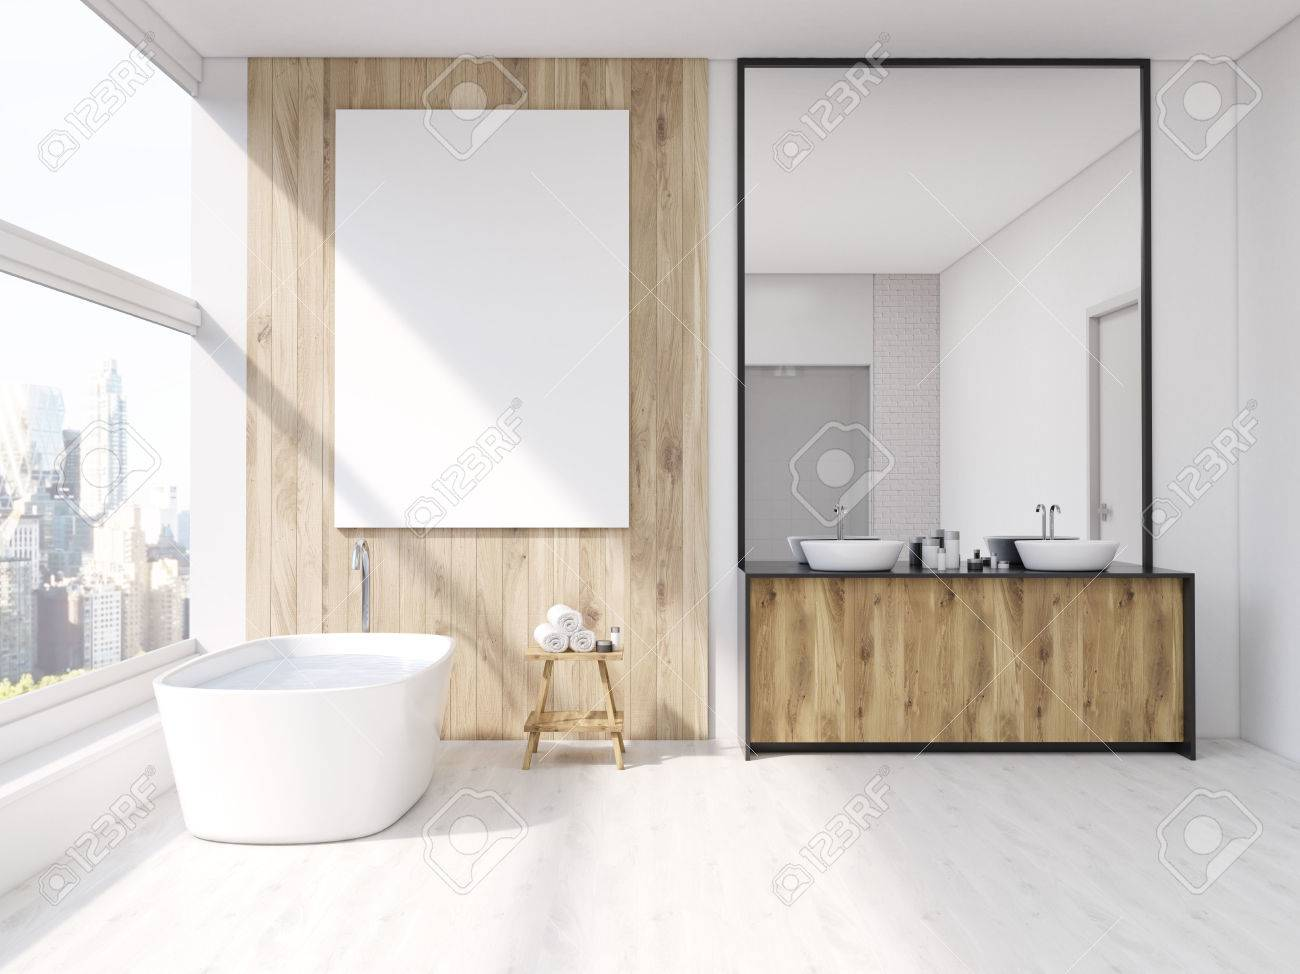 Iterior Of Bathroom With Mirror, Bath Tub, Table With Towels.. Stock ...